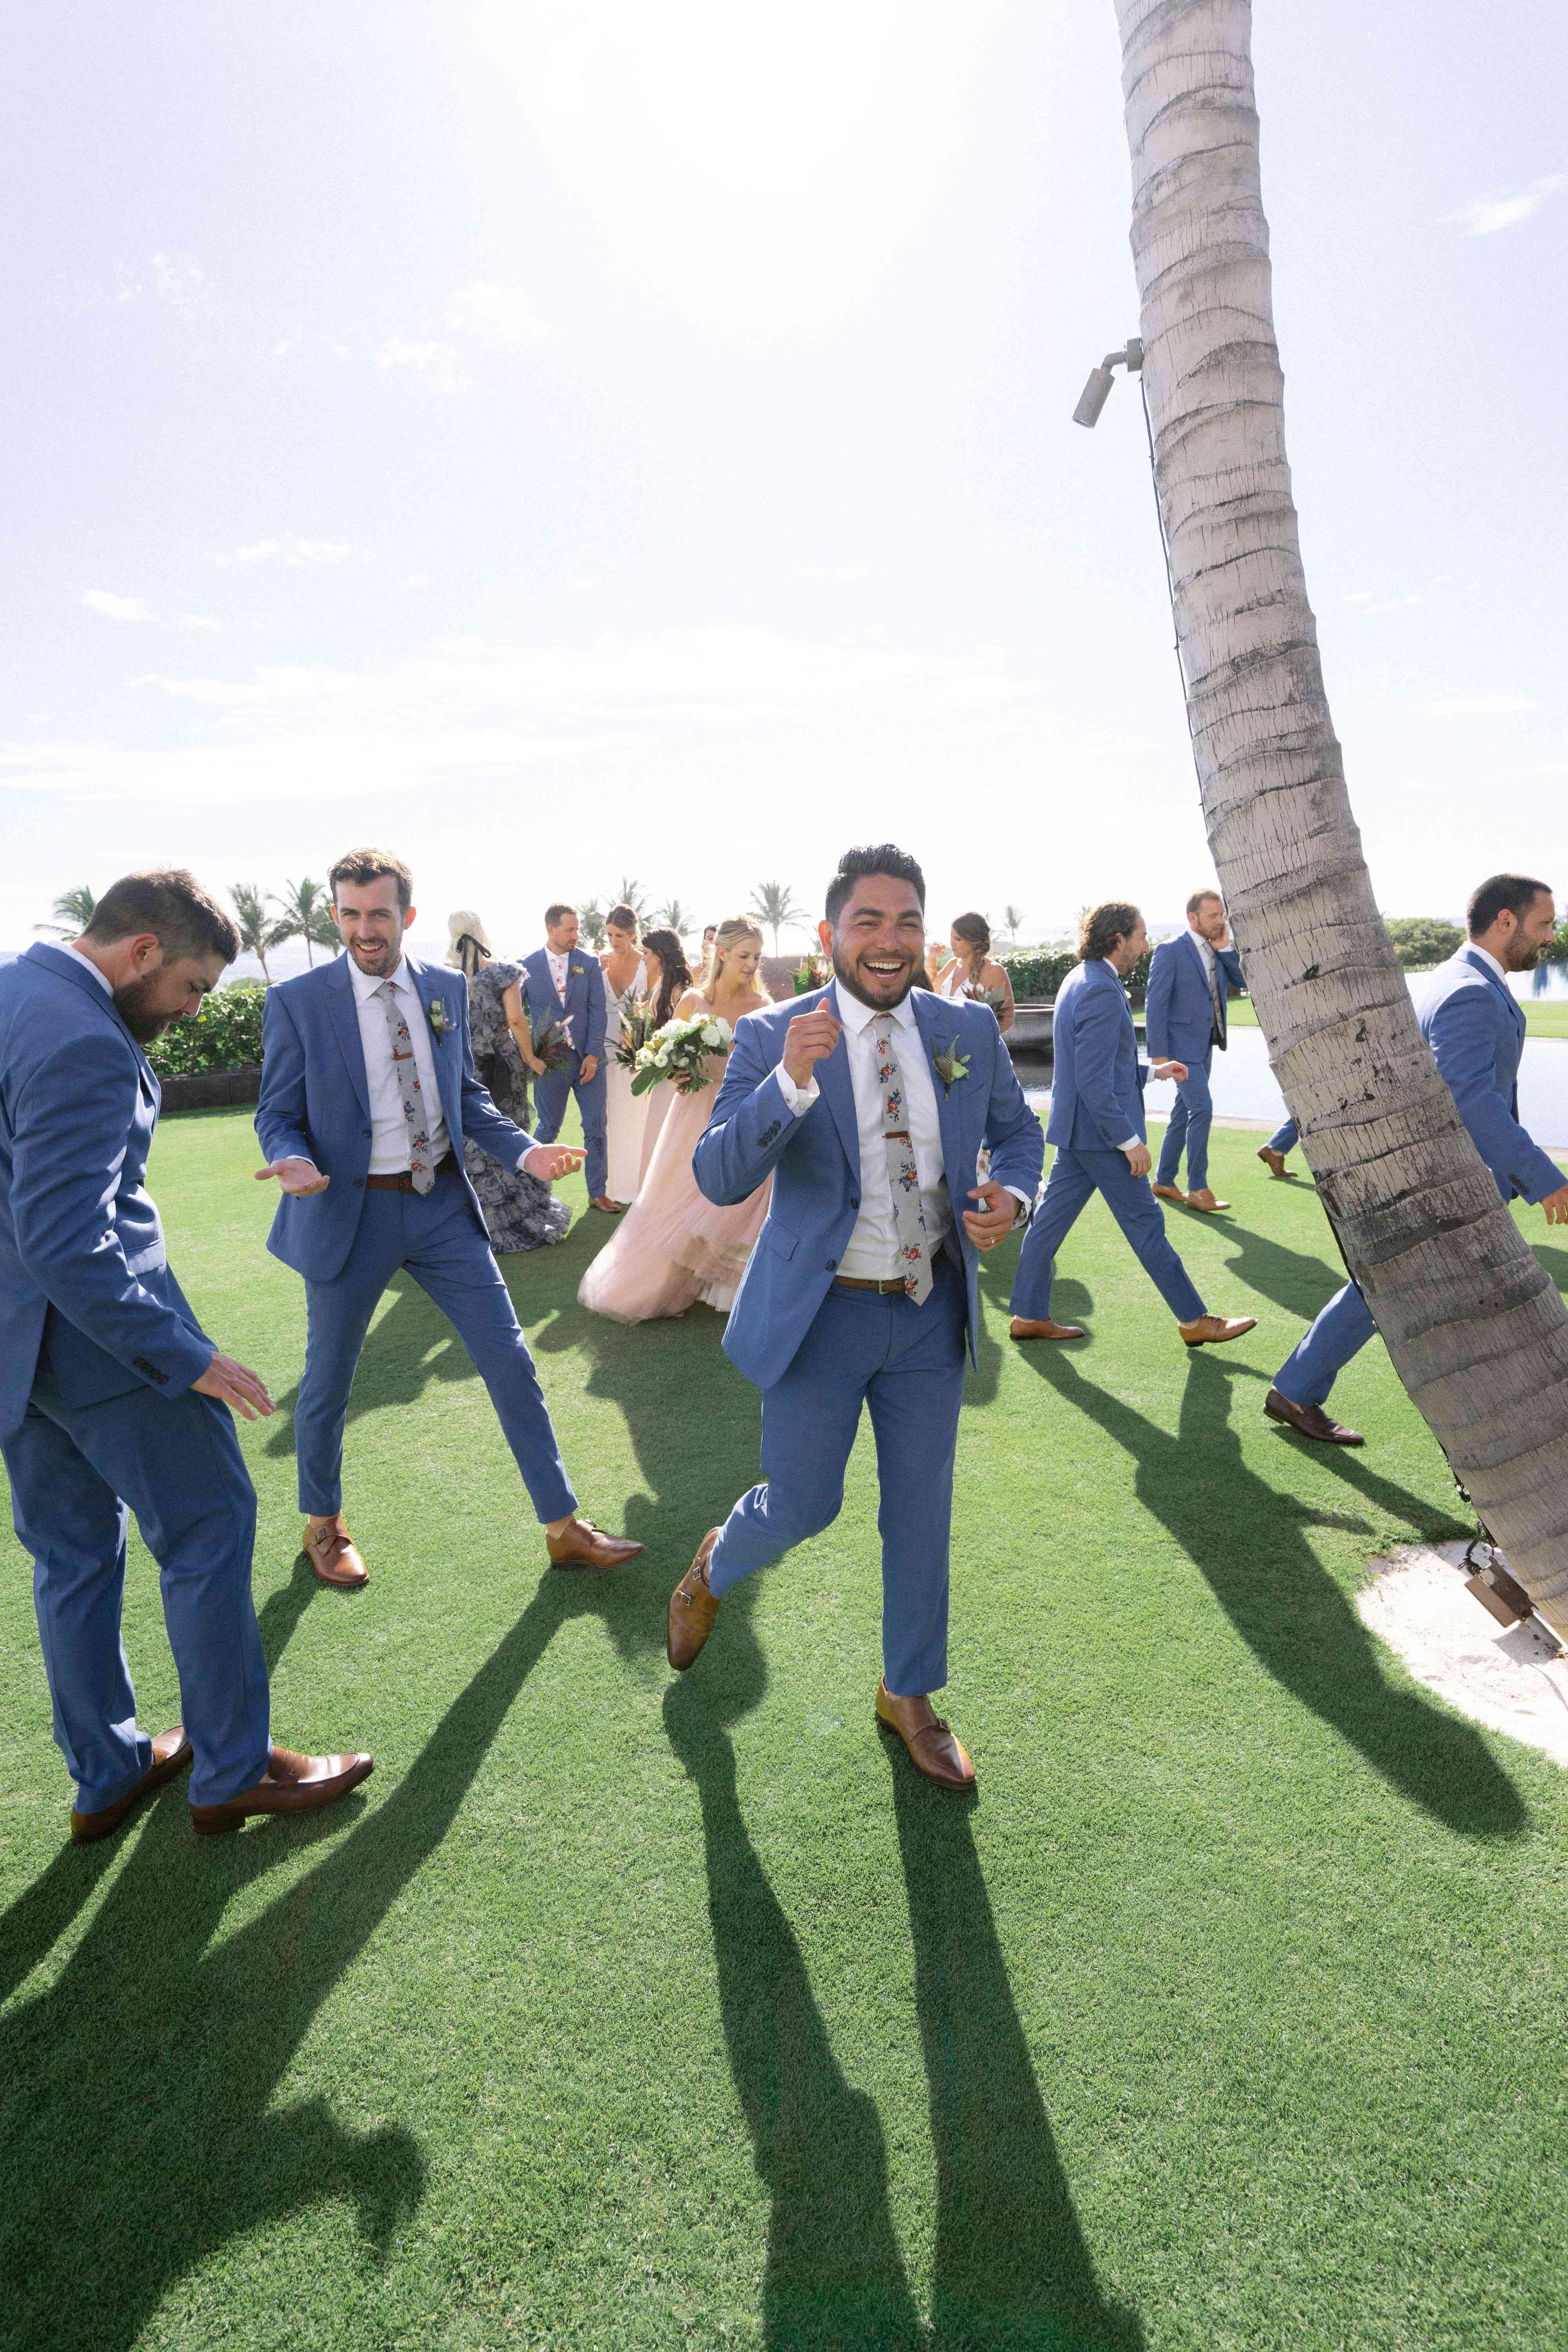 A candid of the groomsmen